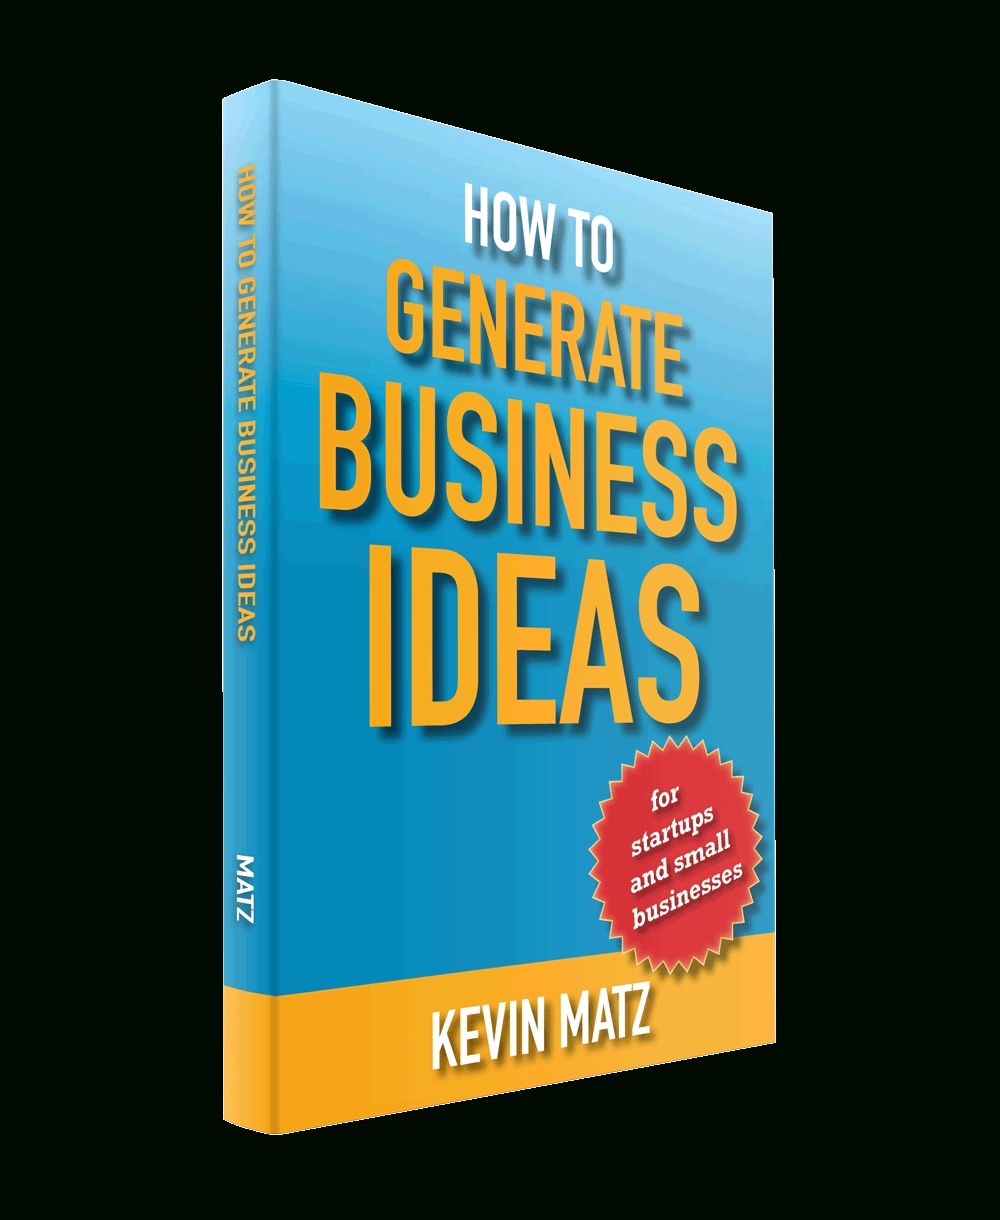 10 Unique How To Generate Business Ideas how to generate business ideas 2020